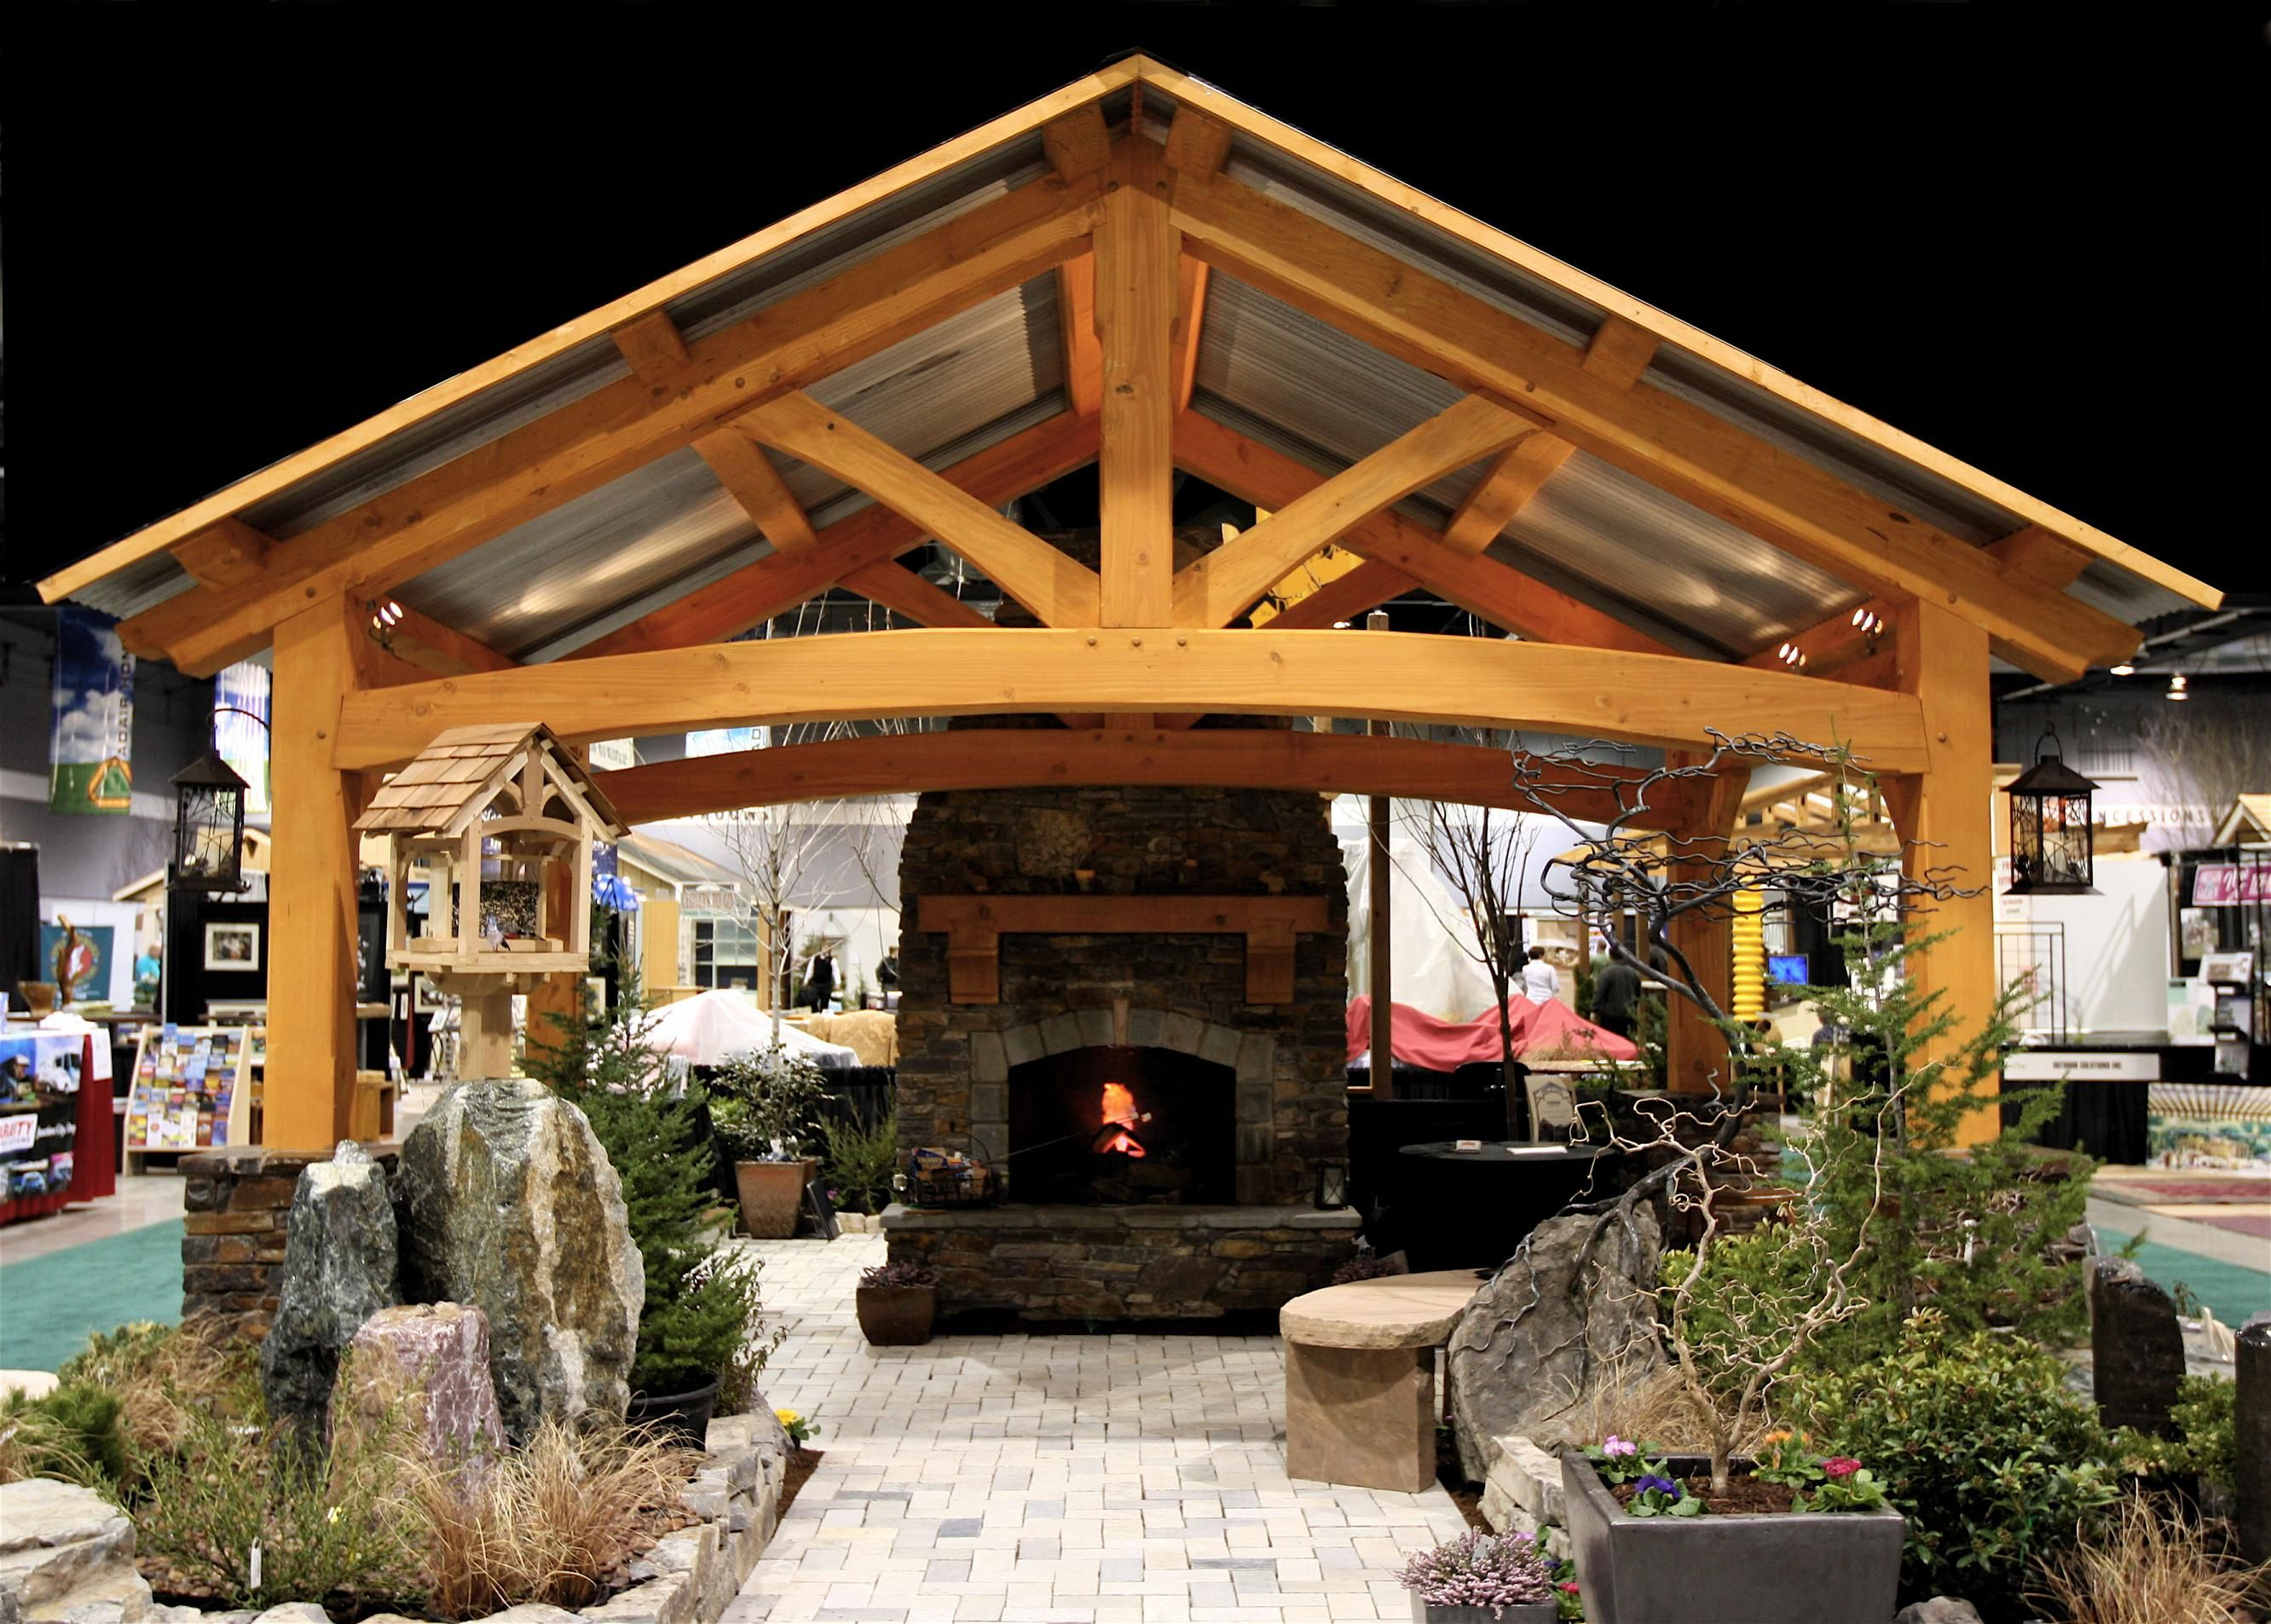 Backyard Pavilion Kits Outdoor Living Room With A Fireplace in Pavilion Ideas Backyard